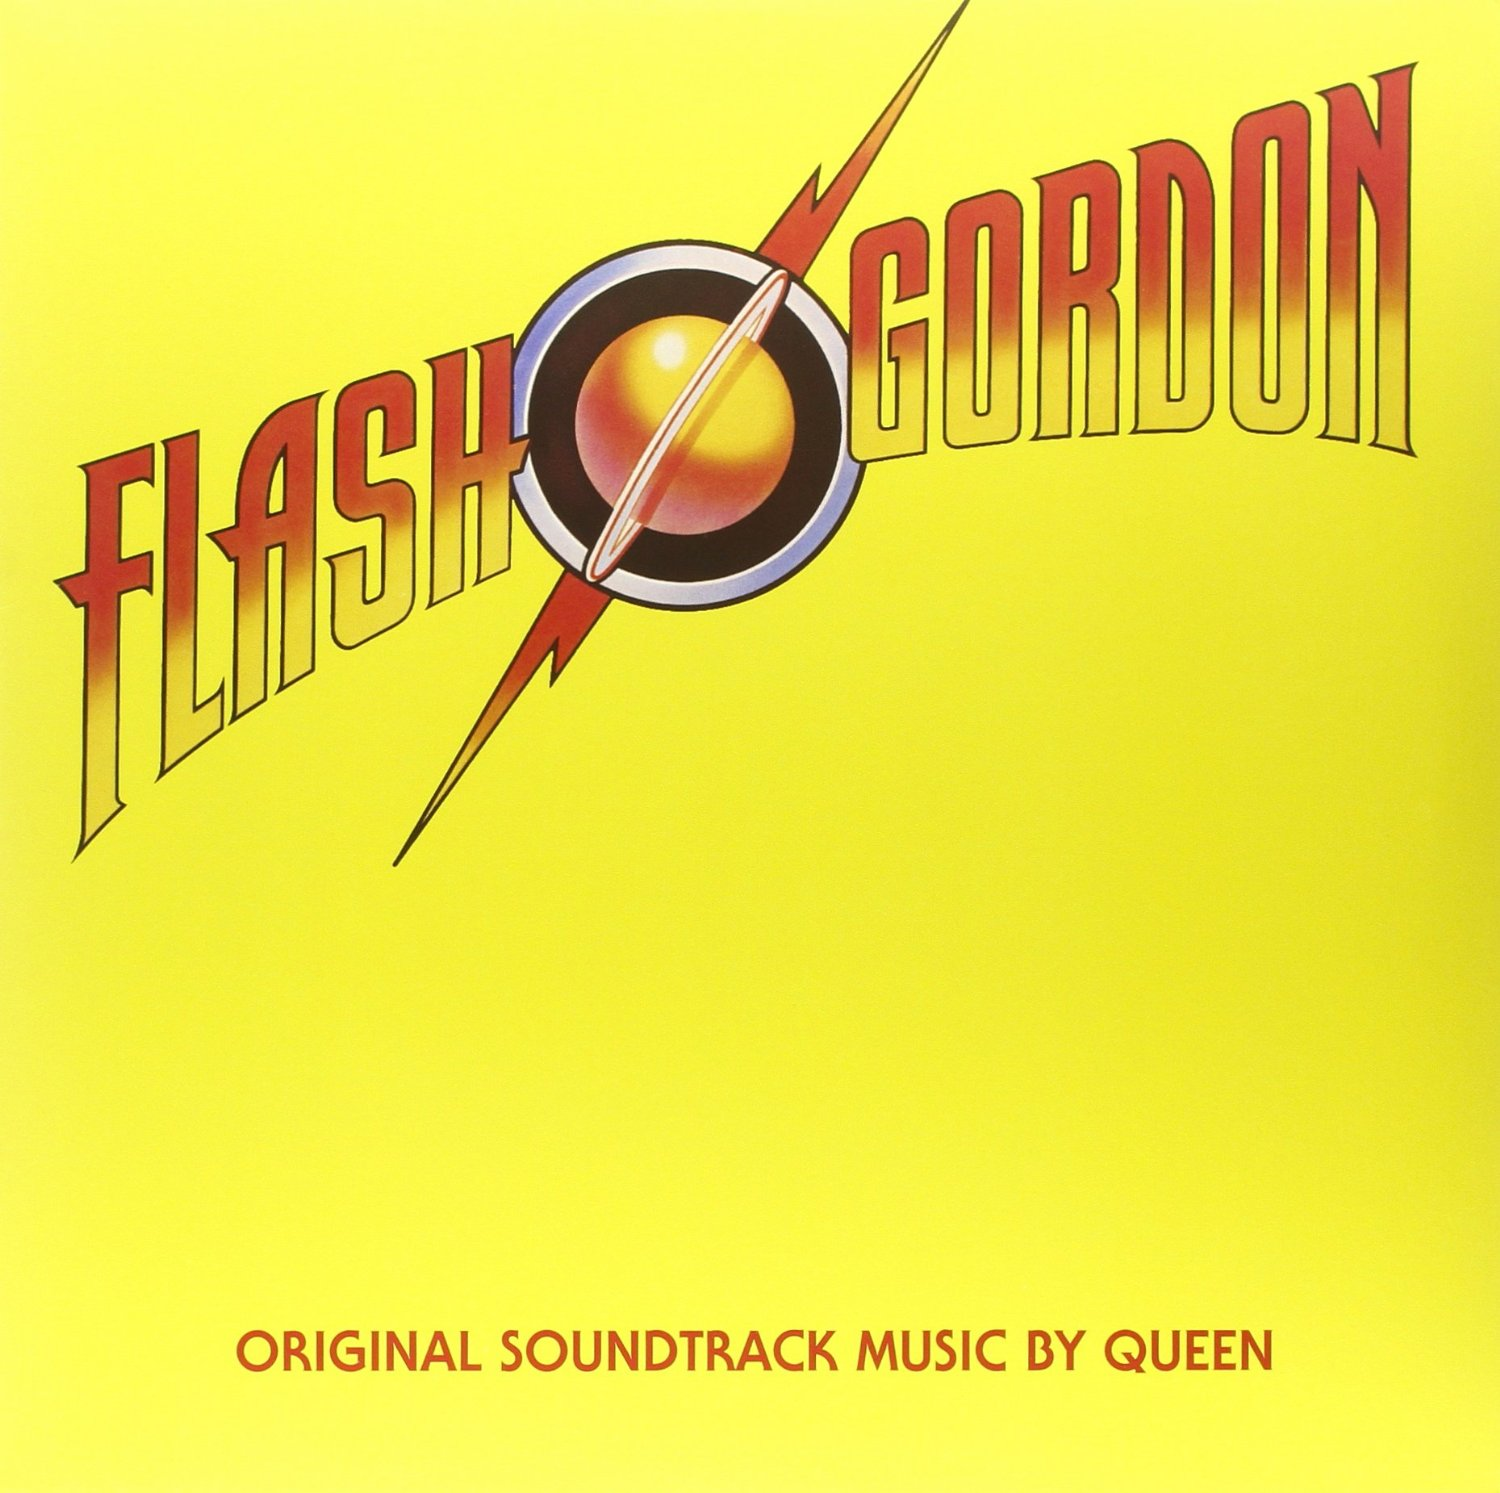 Queen - Flash Gordon [Deluxe] [Remastered] [Reissue] (Shm) (Jpn)